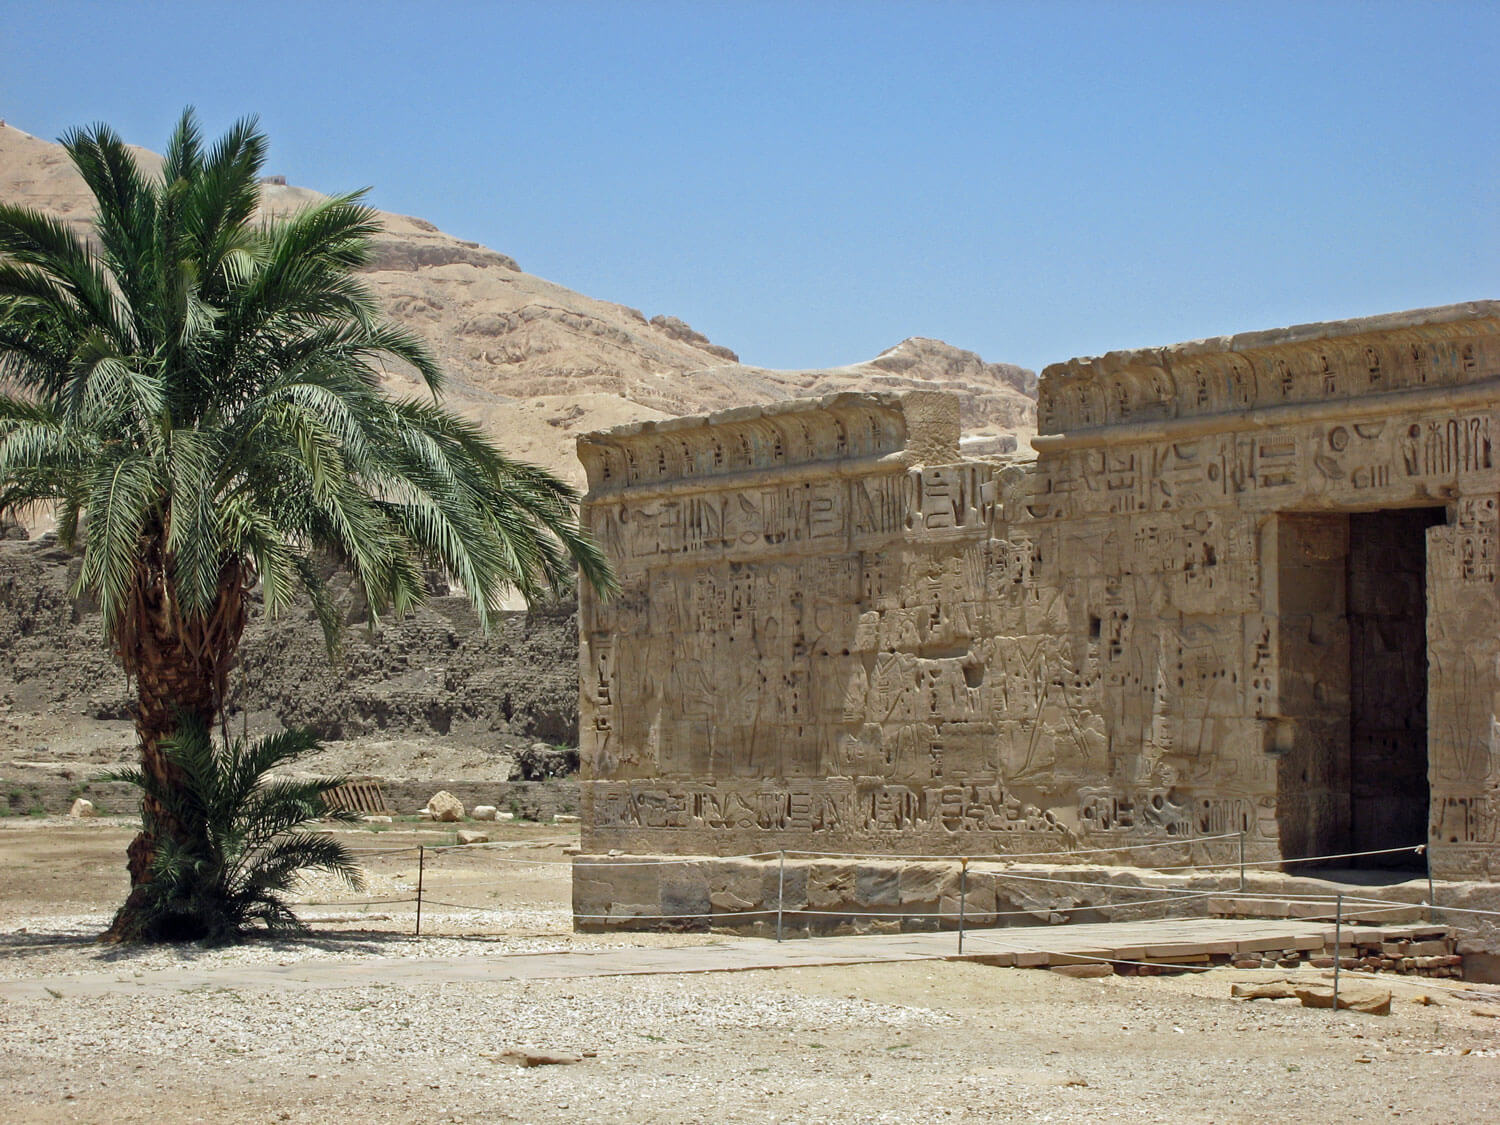 egypt-luxor-temple-palm-tree-sahara-desert.jpg